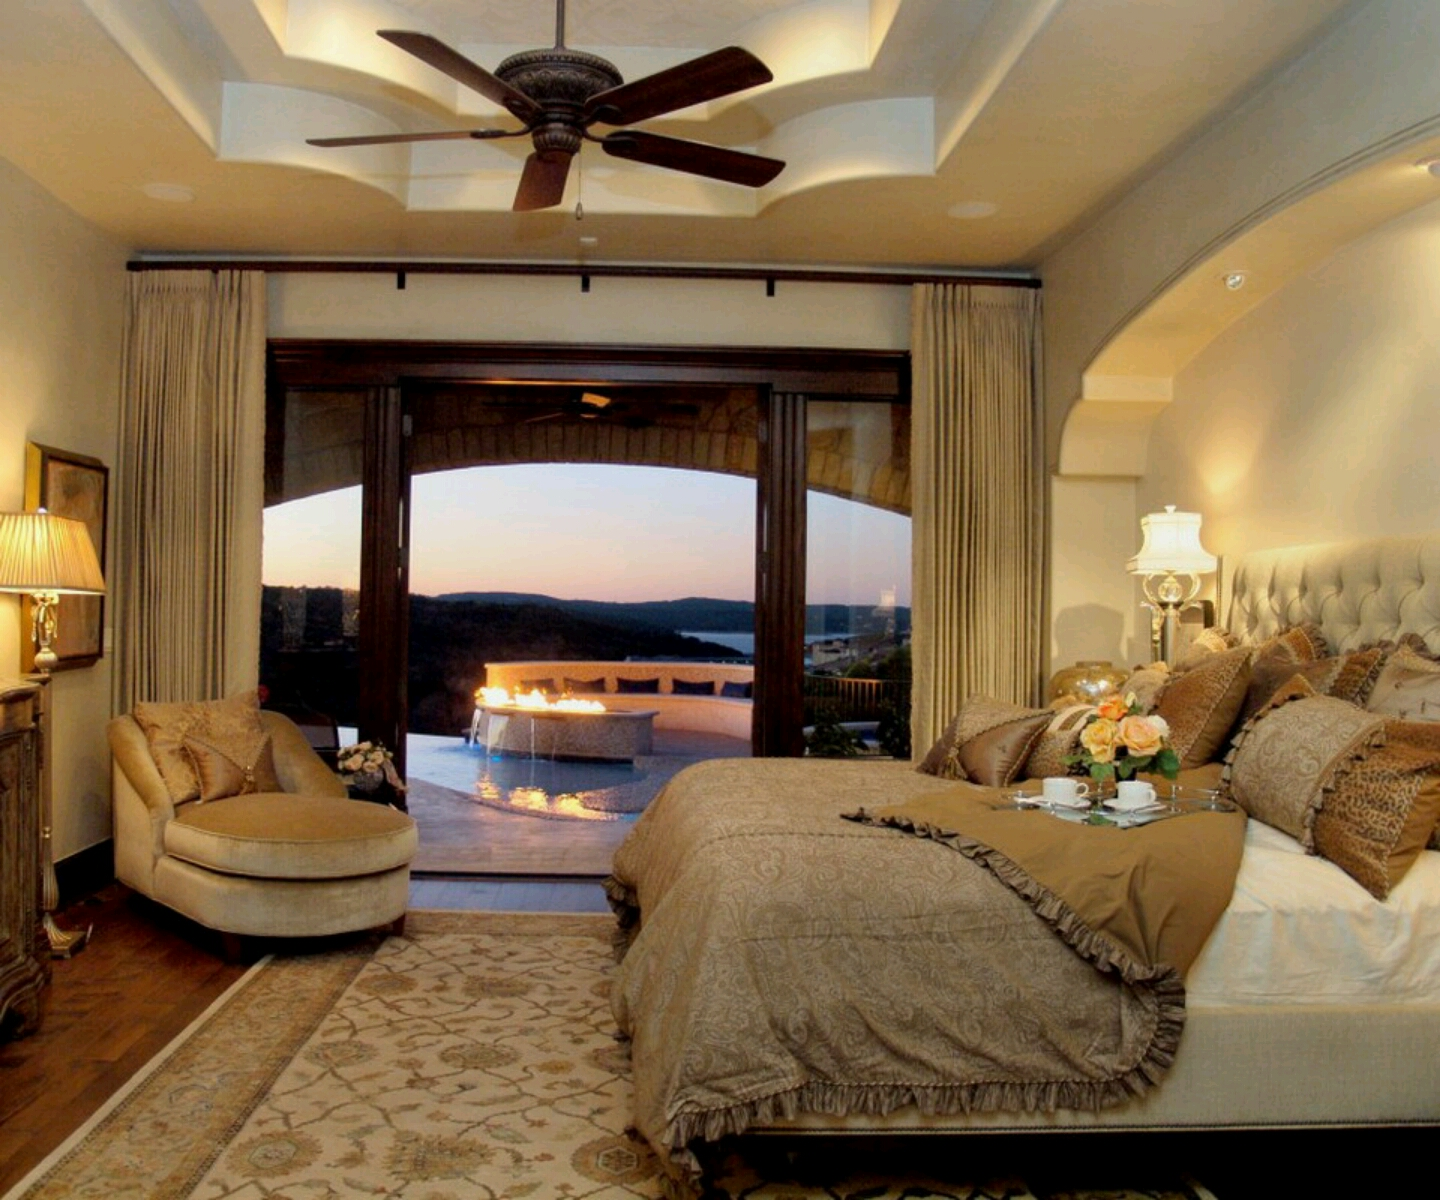 New home designs latest modern bedrooms designs ceiling for Latest bedroom styles